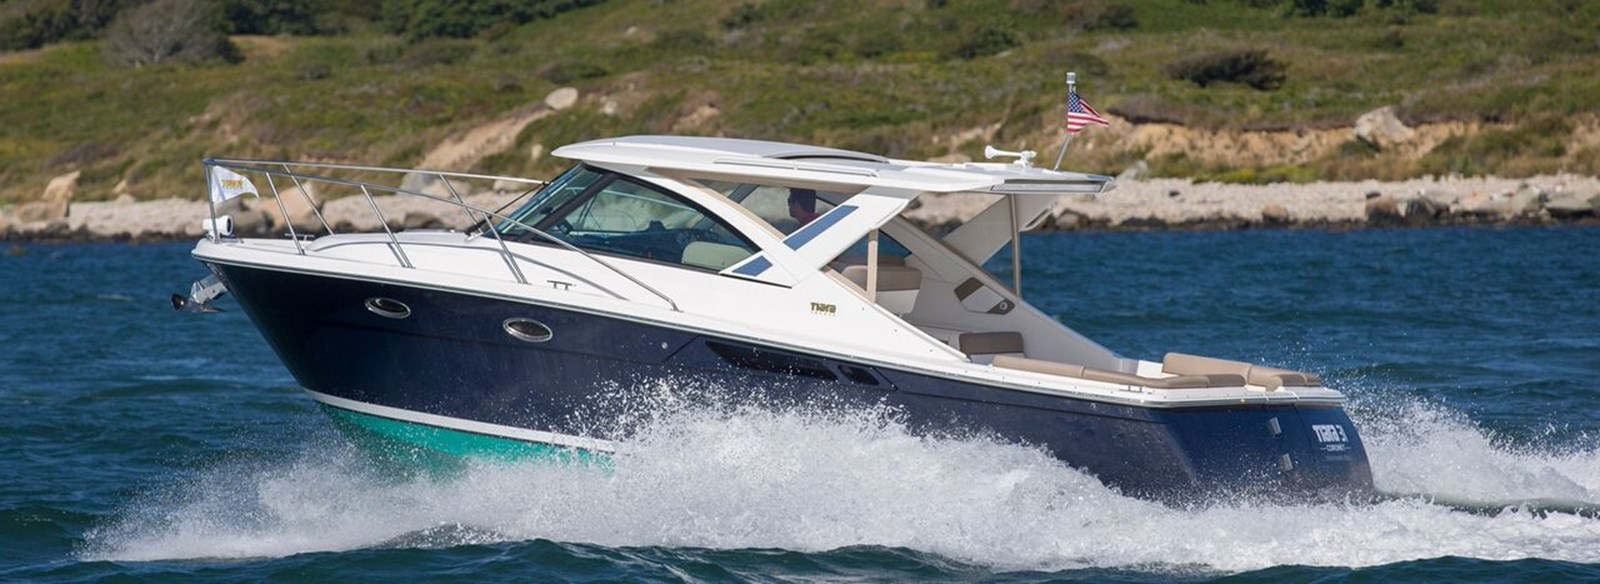 New Tiara 3100 Open Yachts For Sale